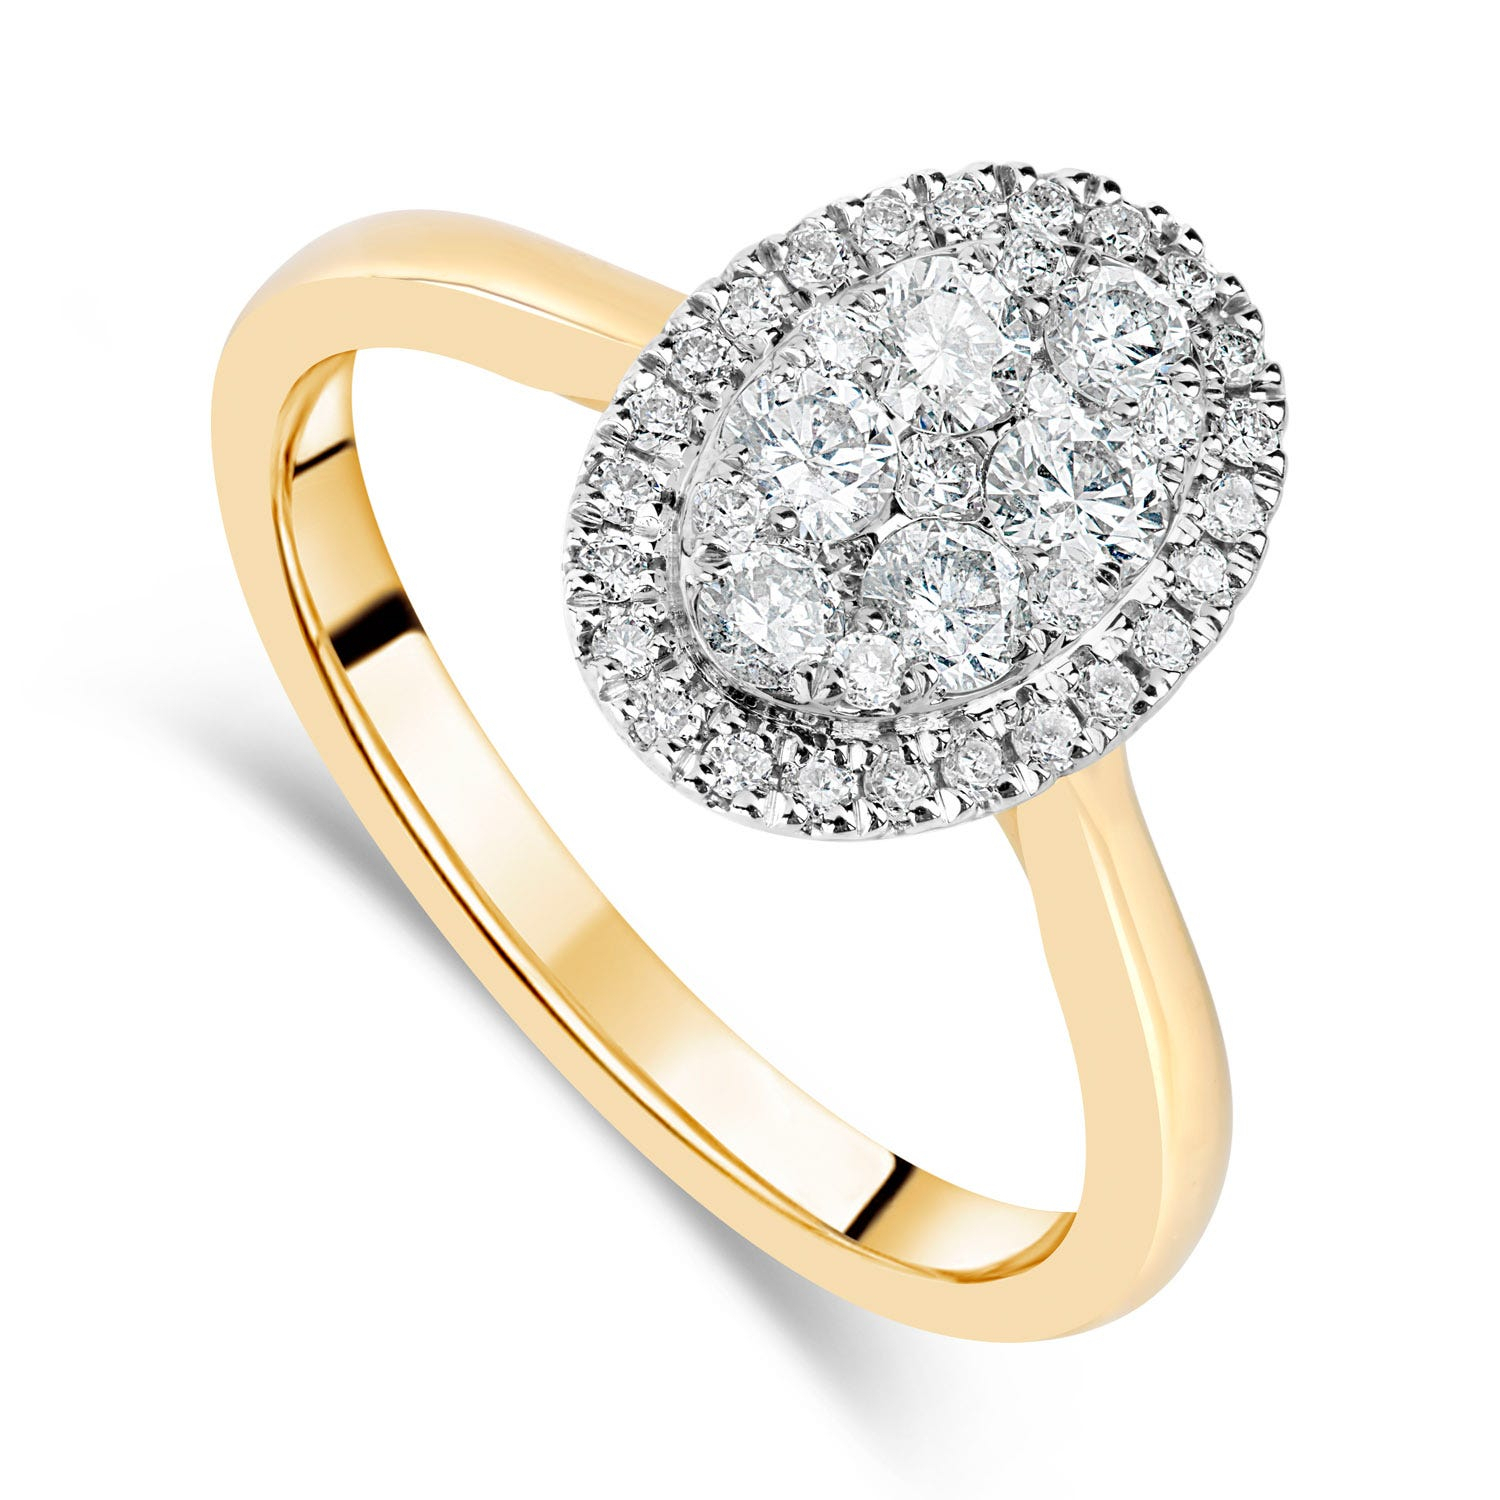 Yellow Gold Engagement Rings With Regard To 2019 Diamond Layered Anniversary Ring In White Gold (View 25 of 25)